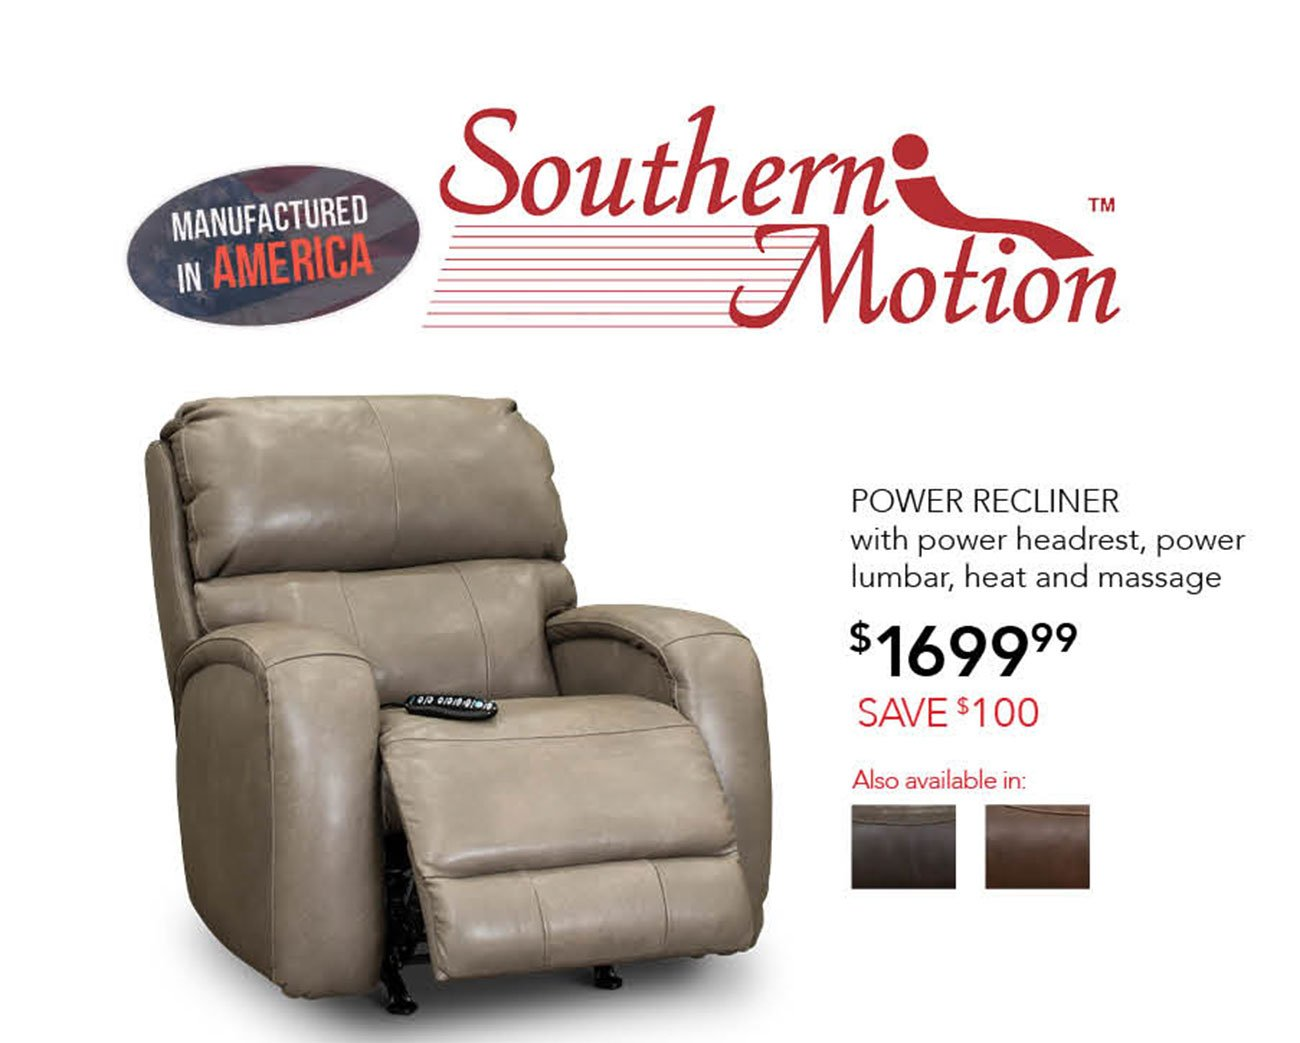 Southern-motion-power-recliner